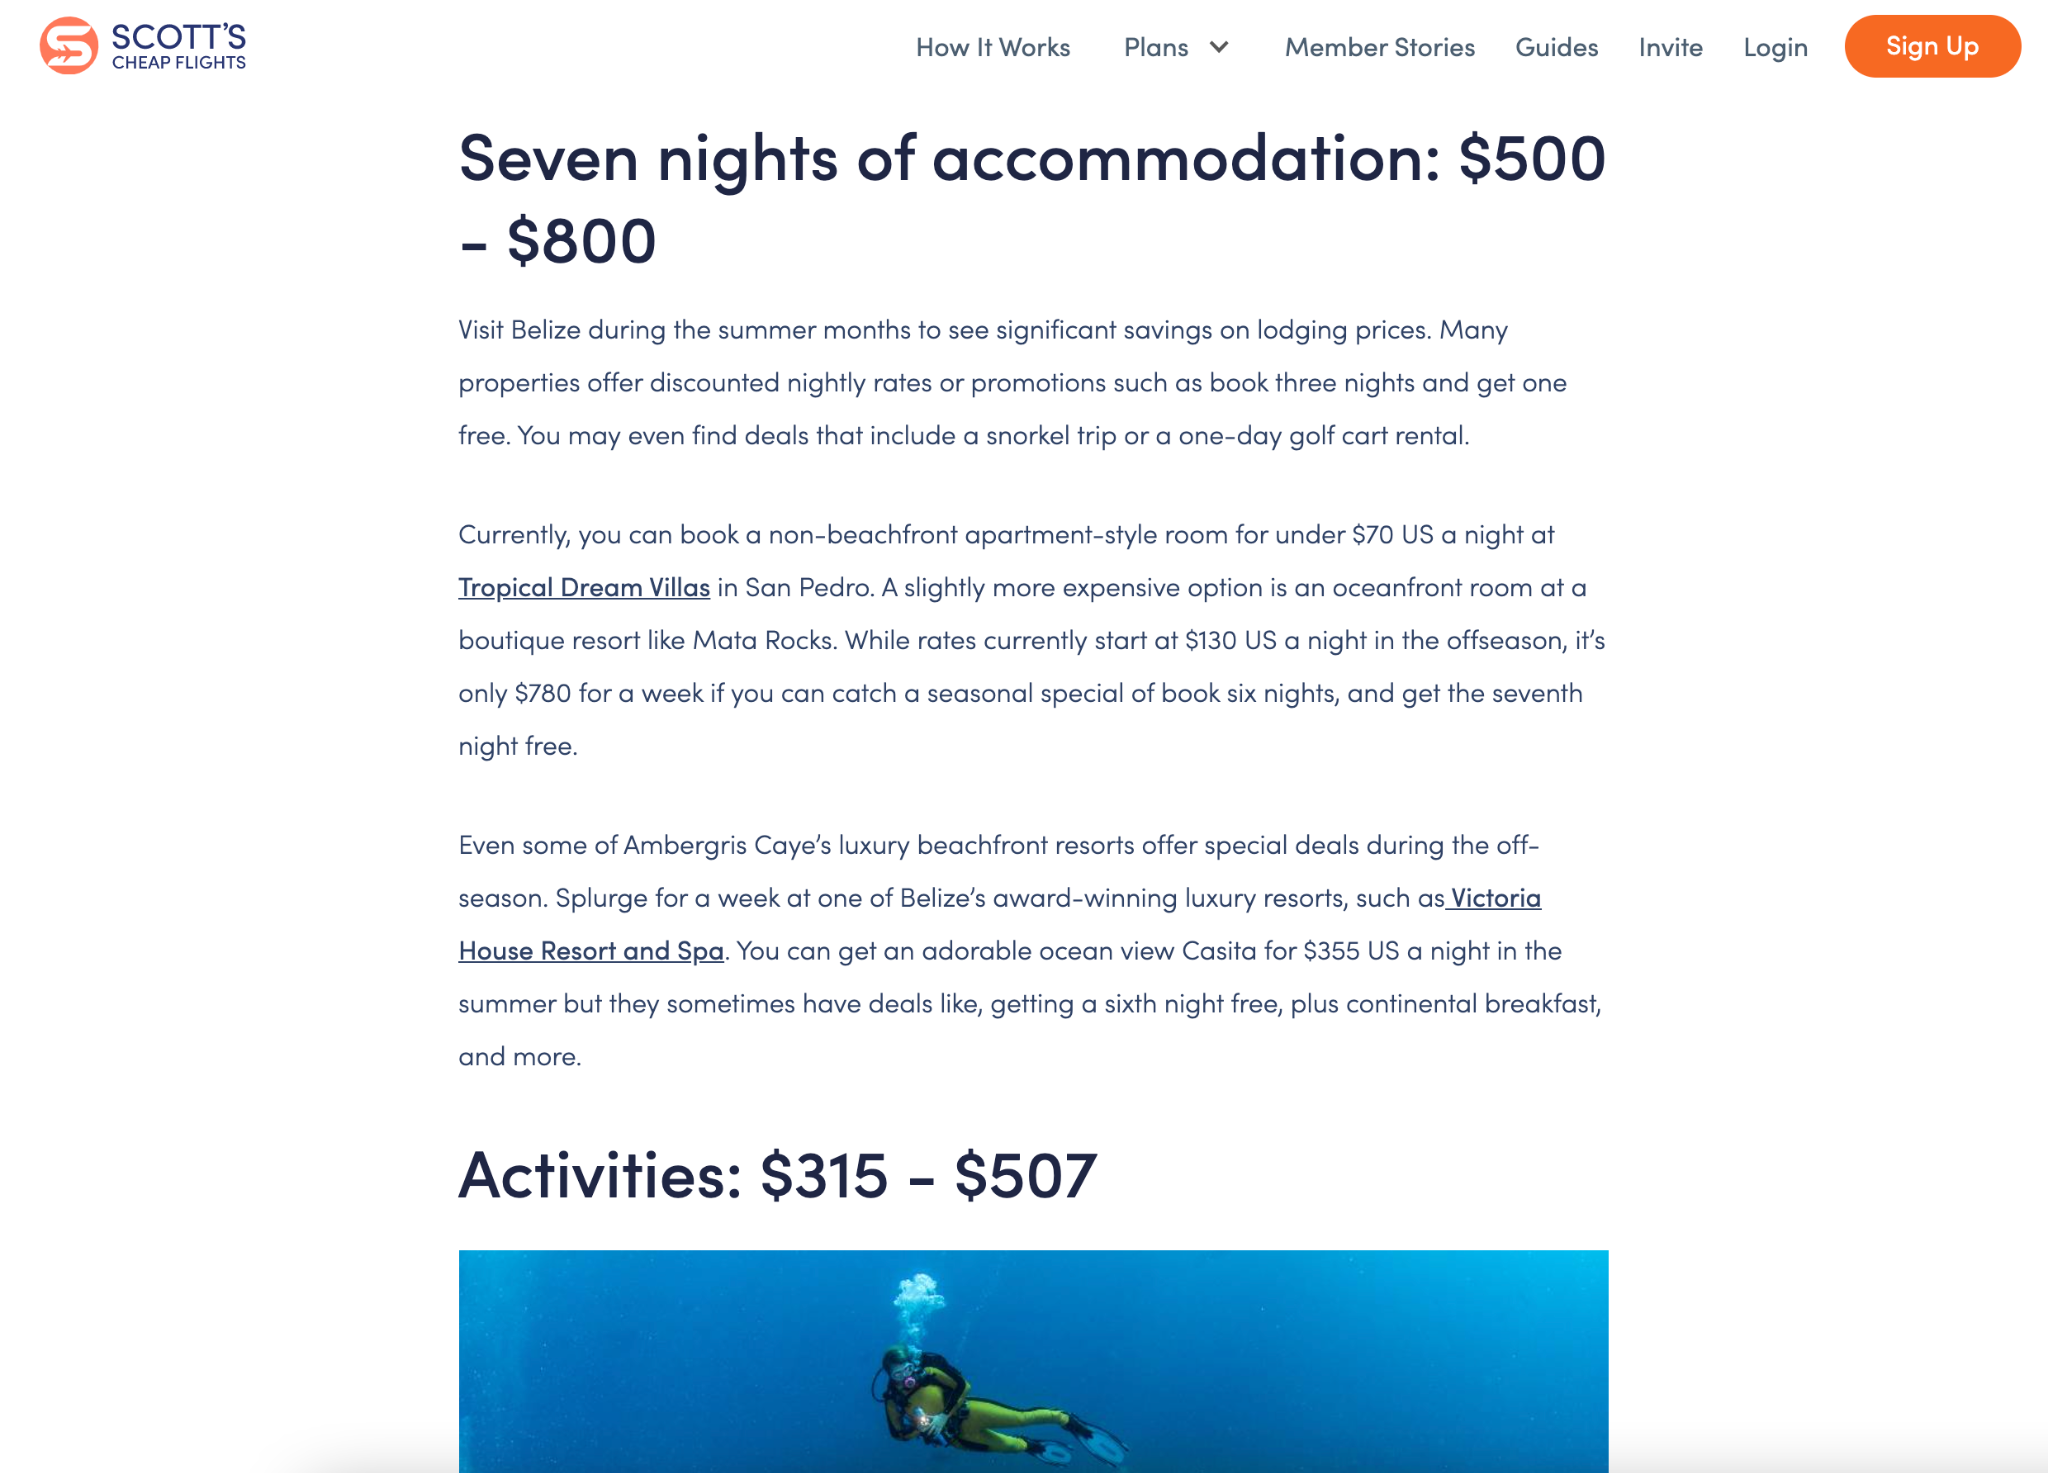 An article from Scott's Cheap Flights allows you to jump from topic to topic with clear, distinct headings that accurately describe the small-ish amounts of text underneath. The headings and accompanying text in view are: Seven nights of accommodation $500 to $800, Activities $315 to $507.